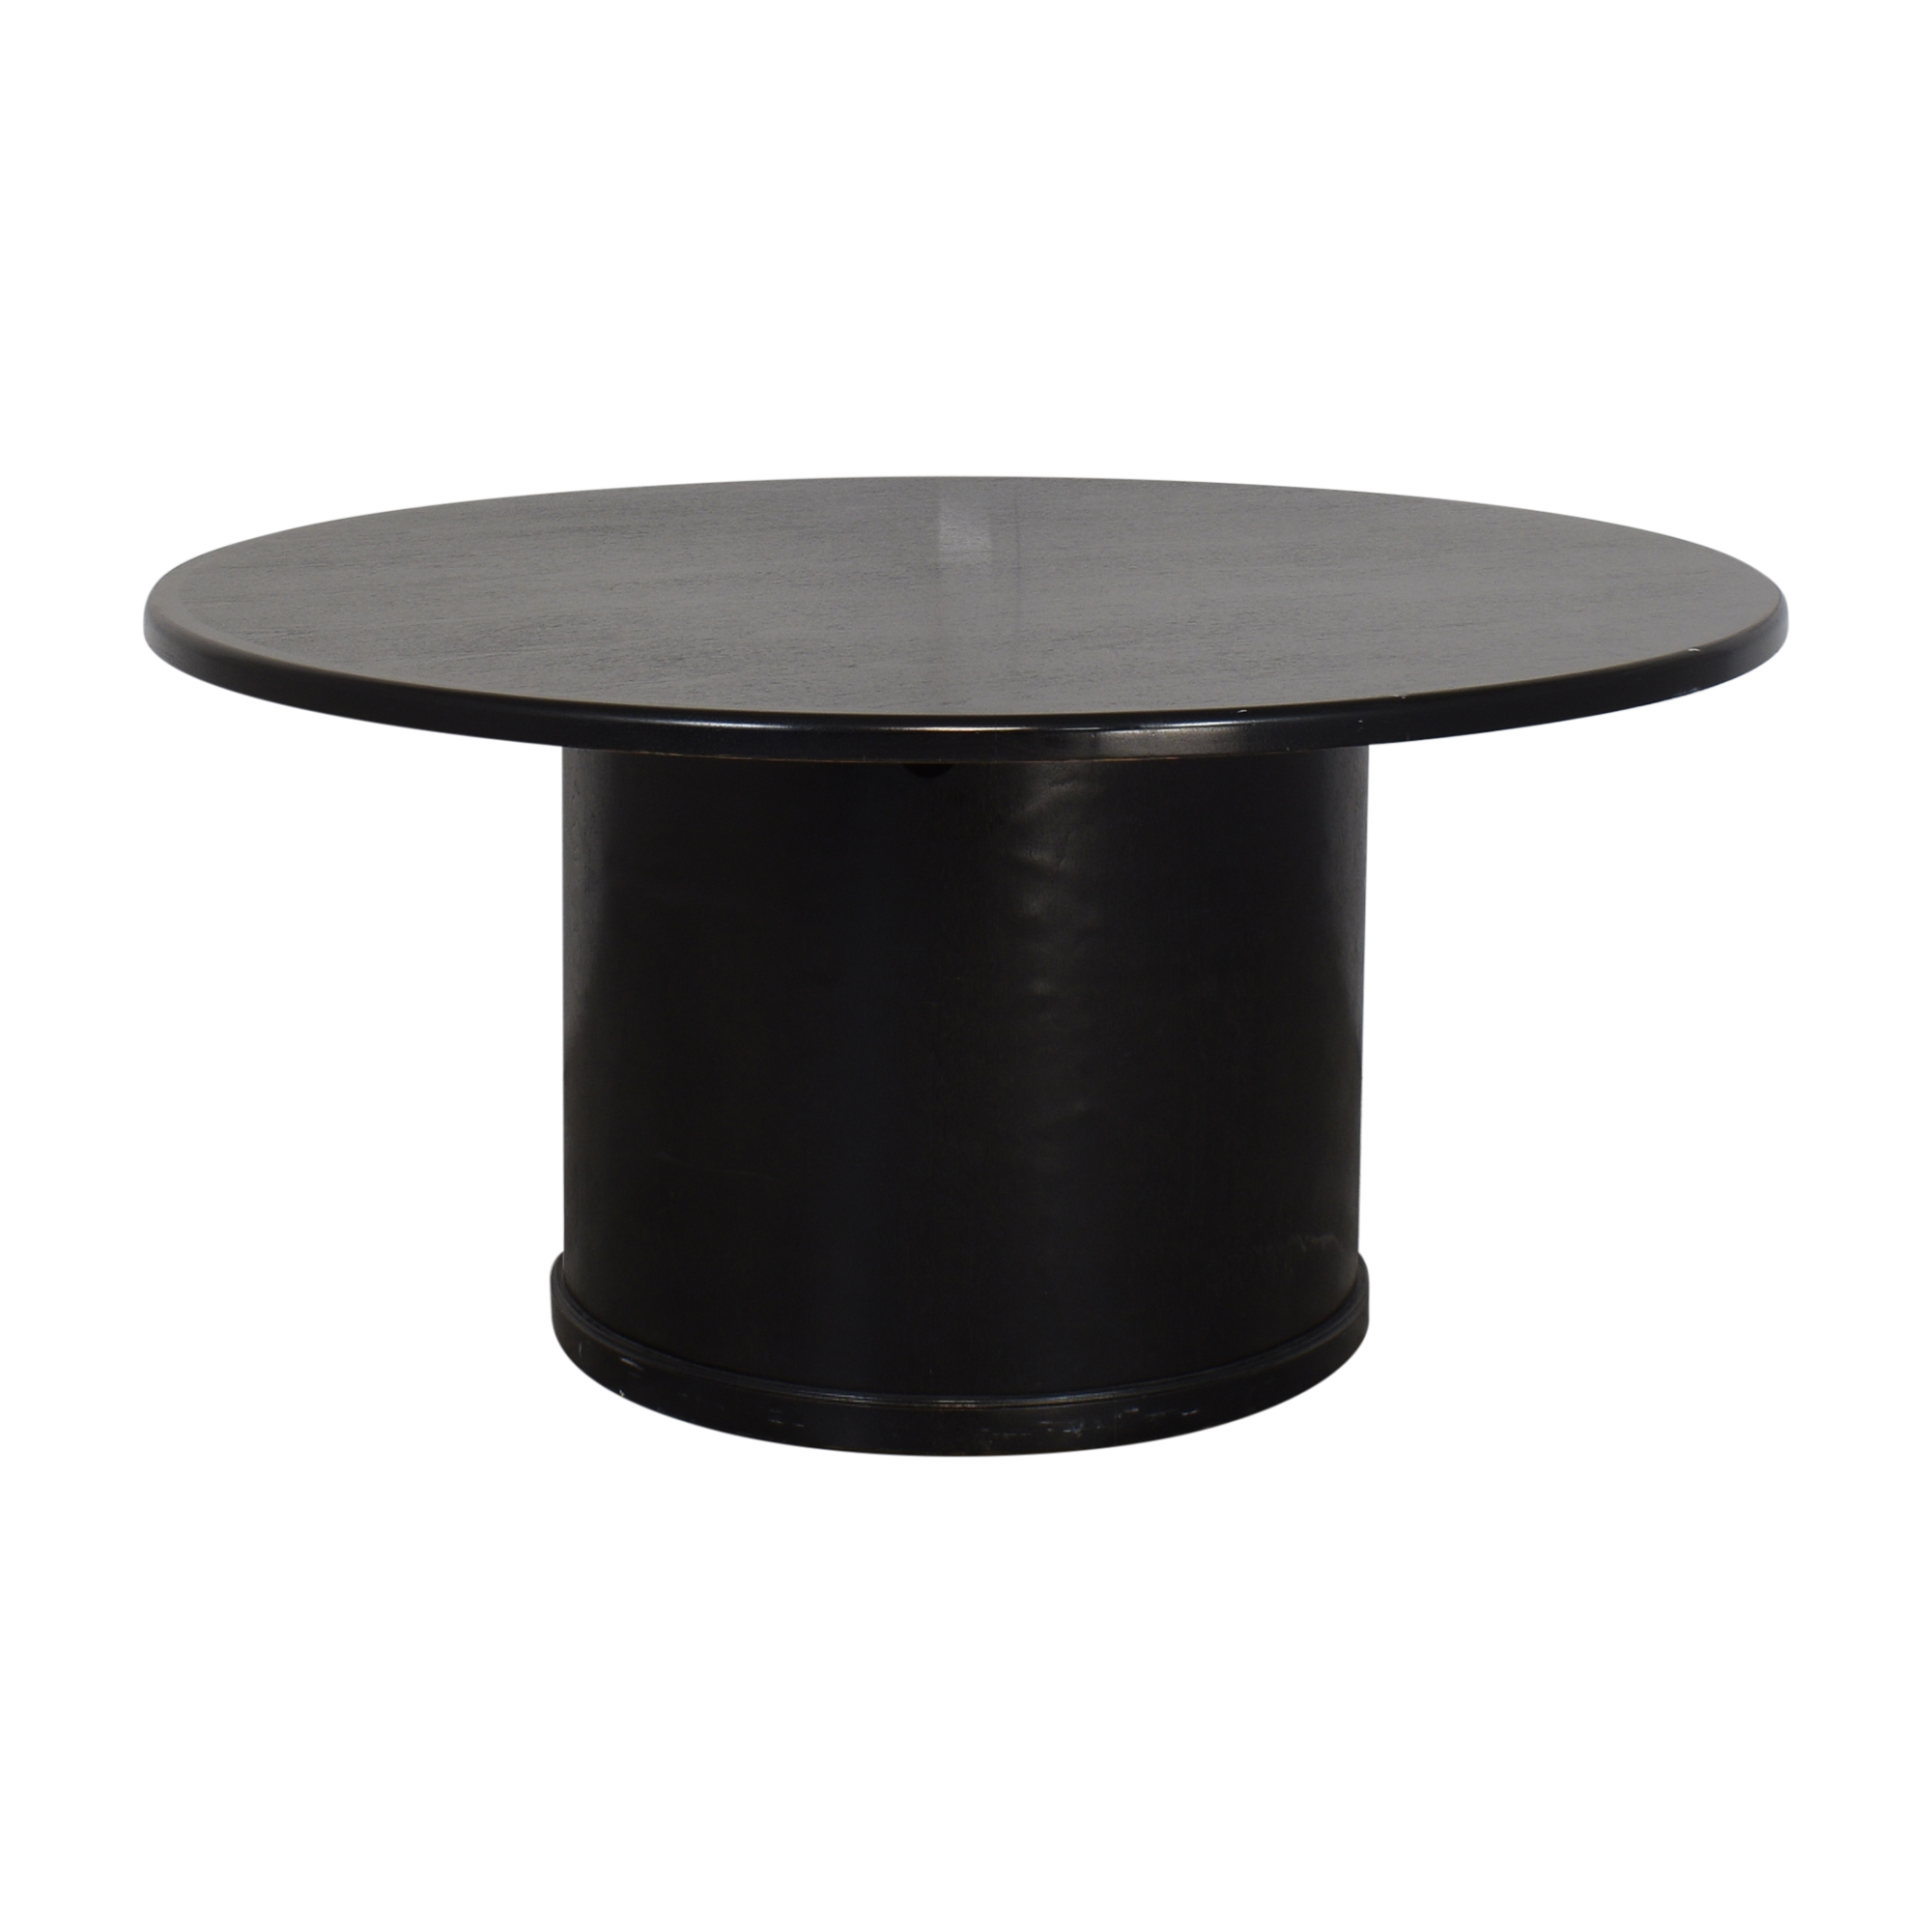 Steelcase Steelcase Round Table ct